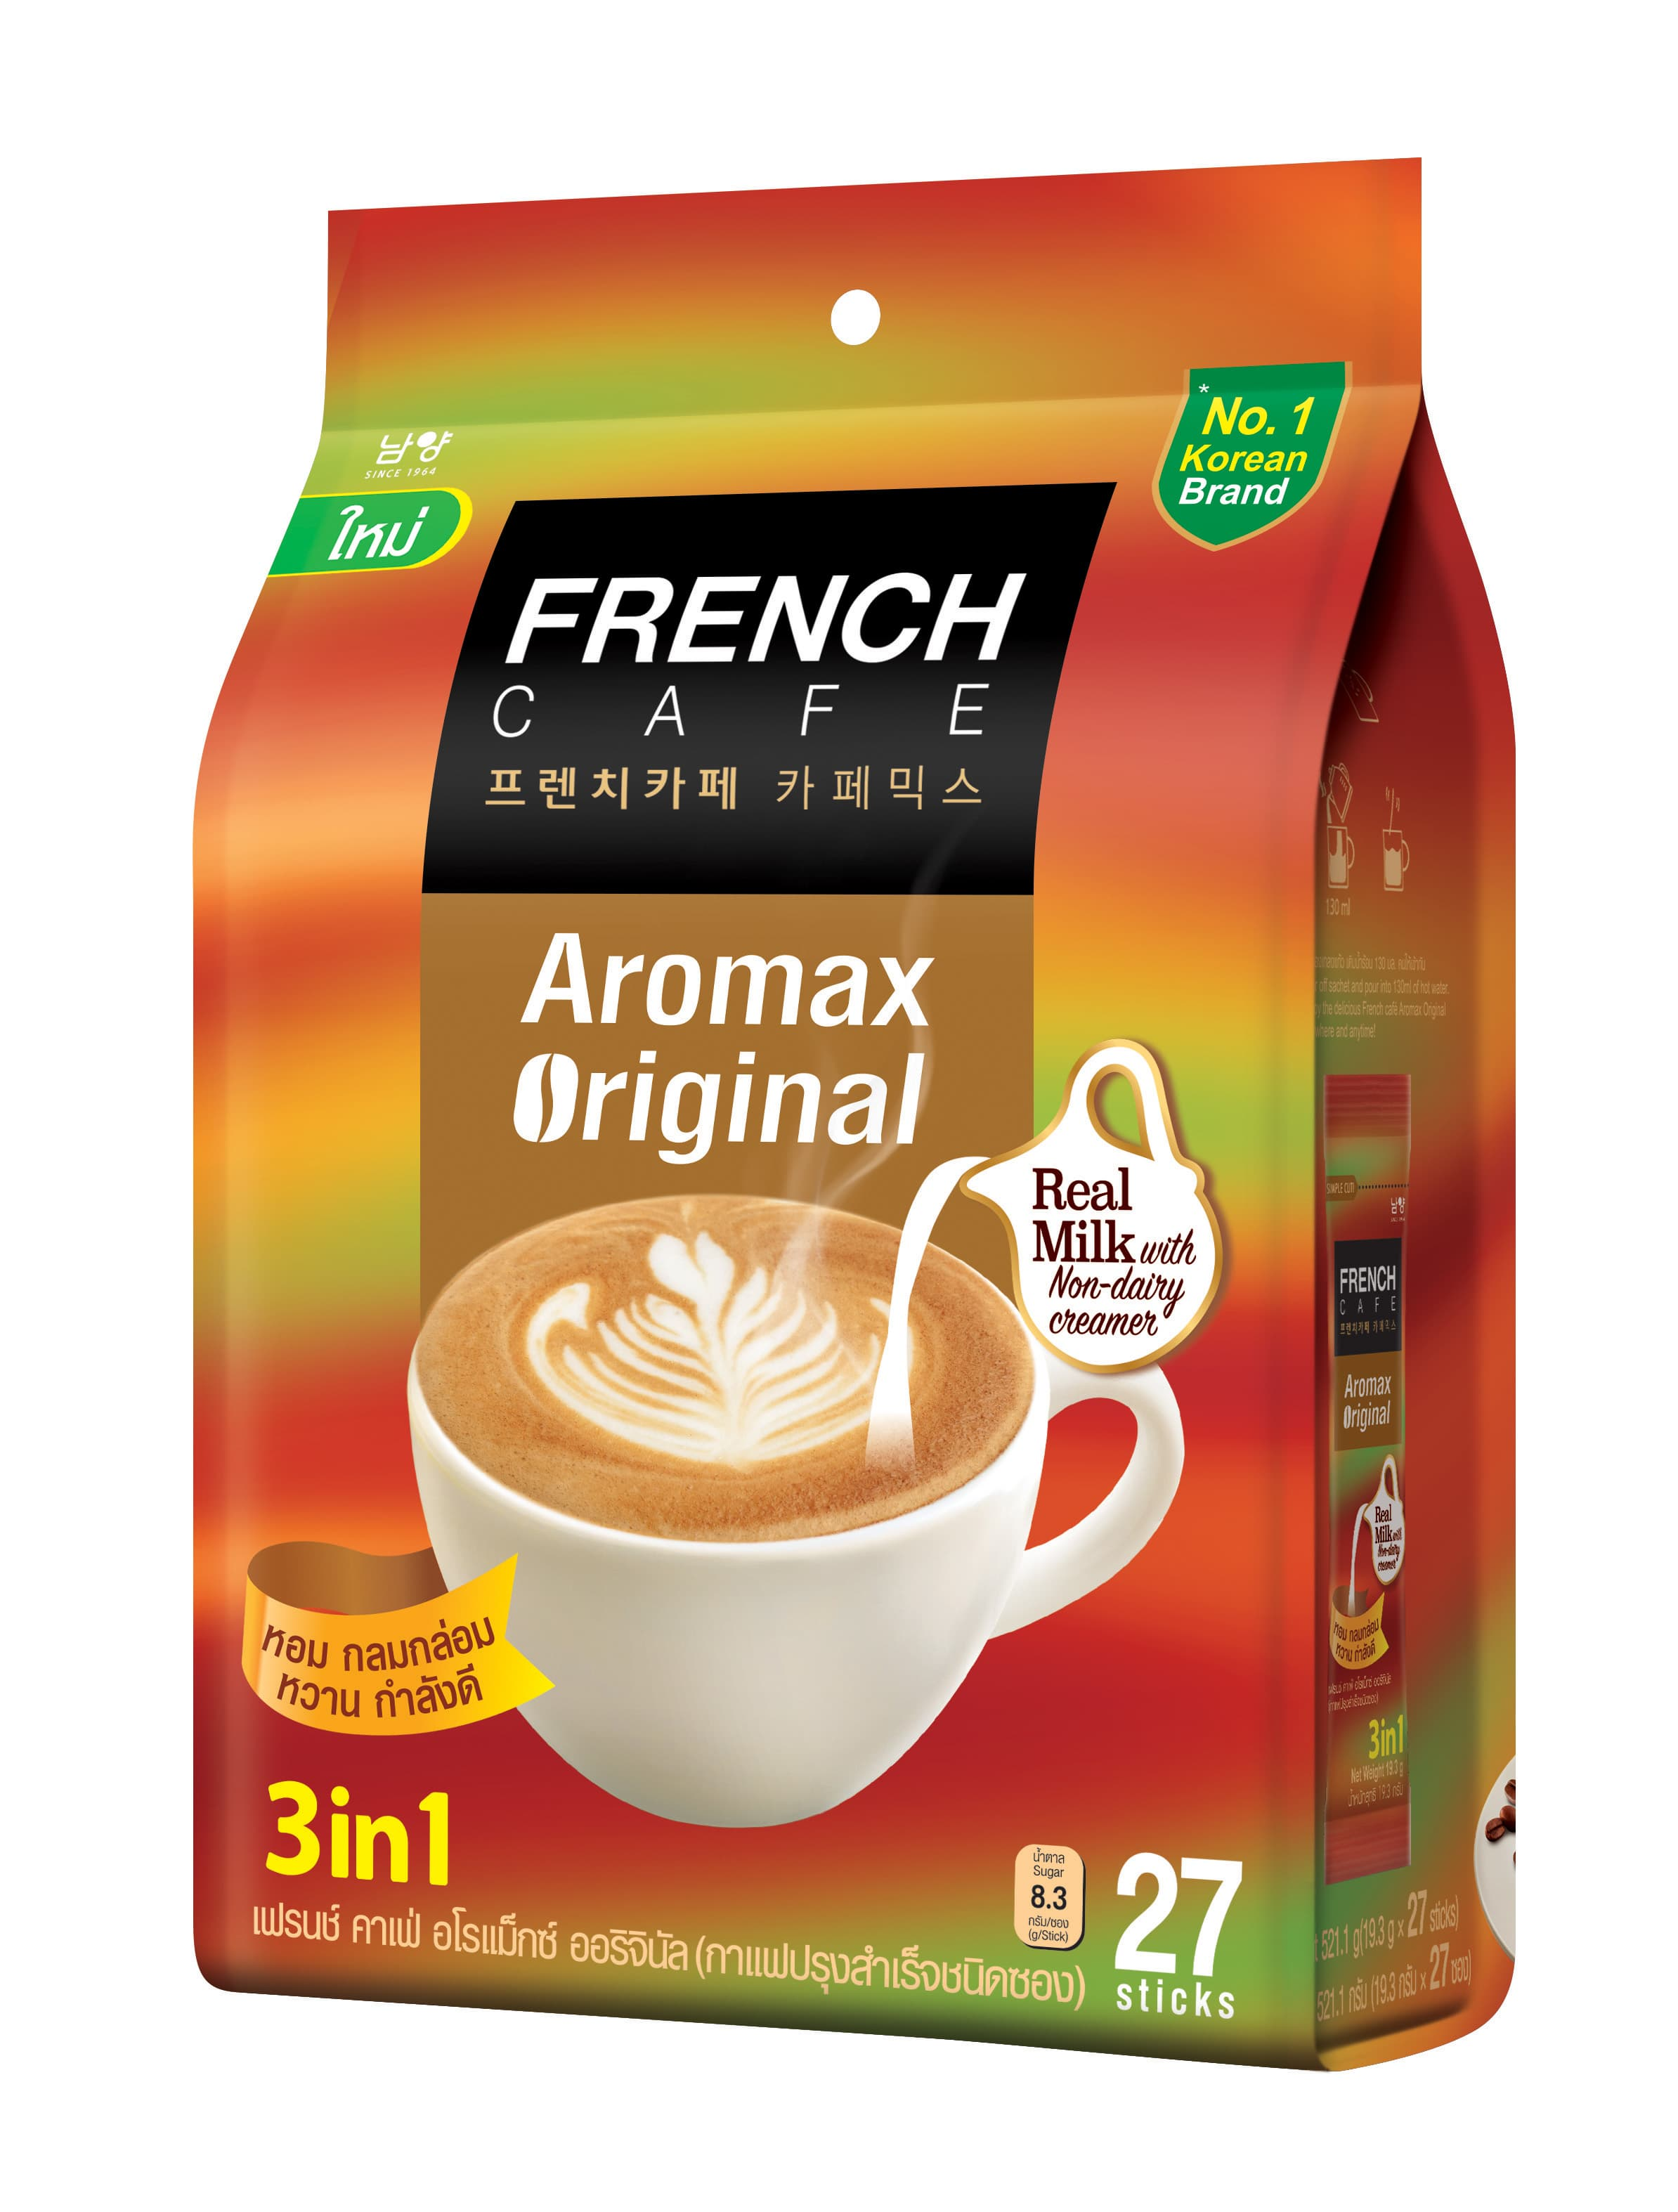 French Cafe 3in1 mix coffee Aromax Original_ Aromax Espresso